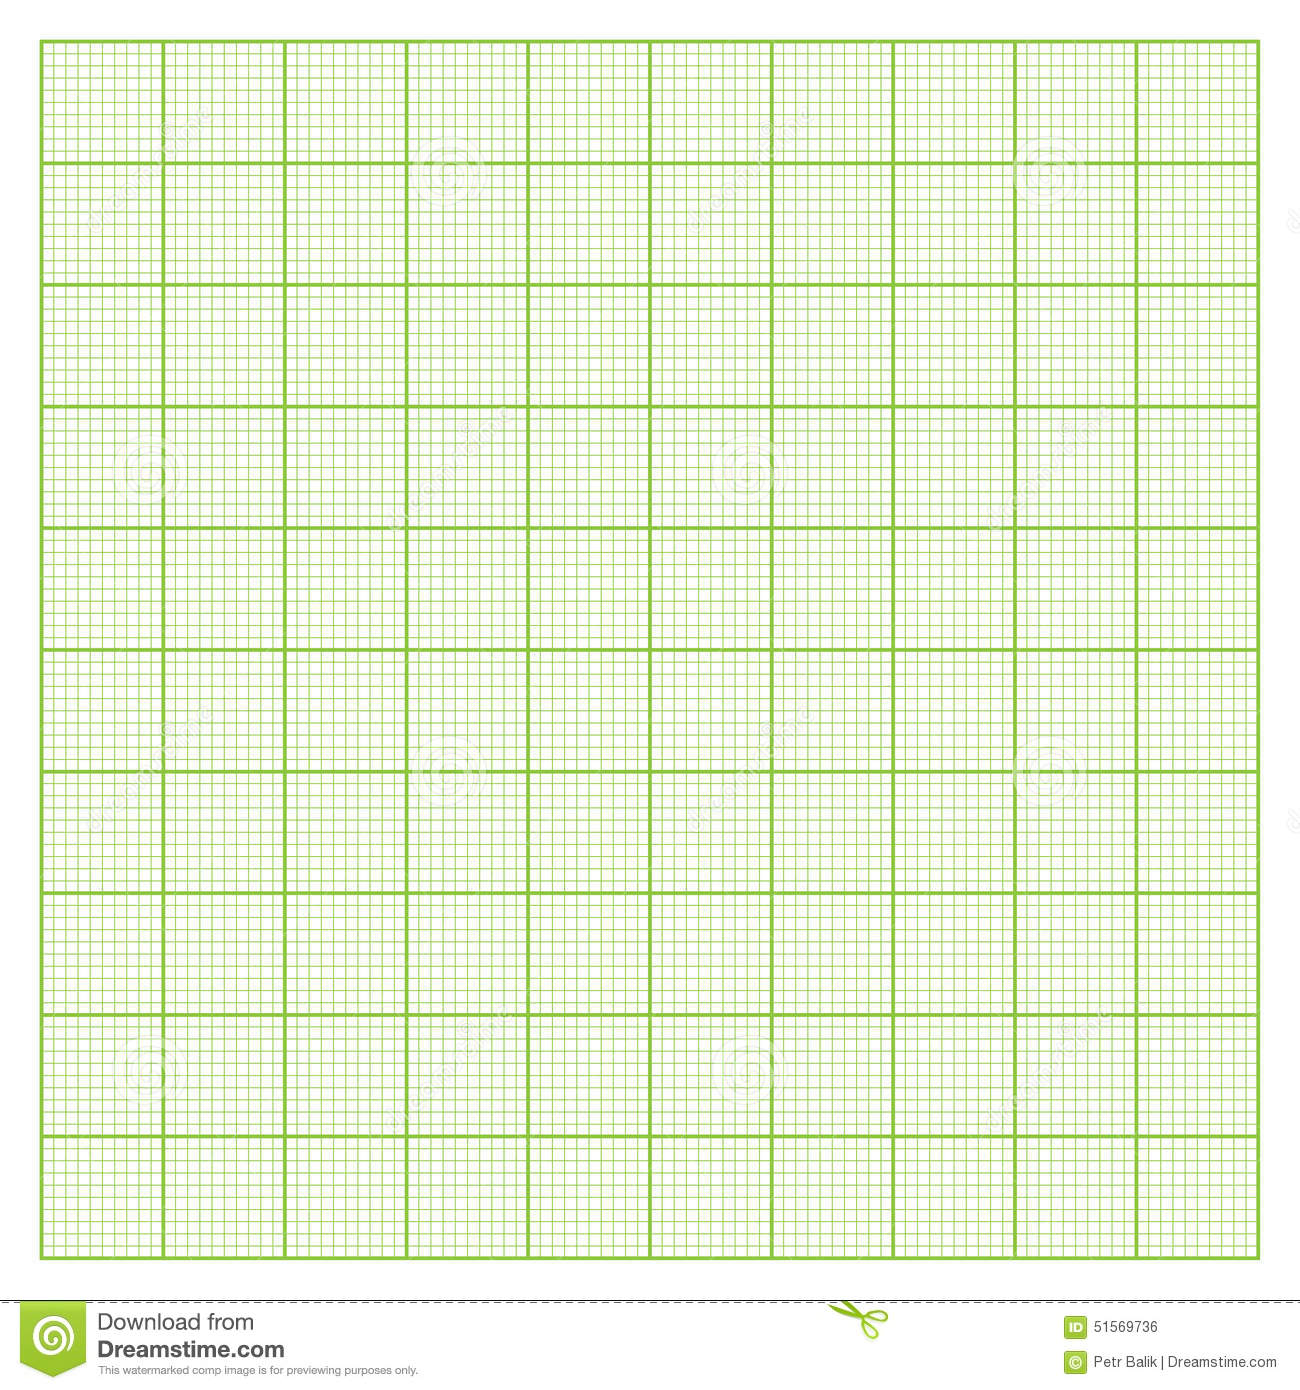 millimeter paper grid stock illustration  illustration of